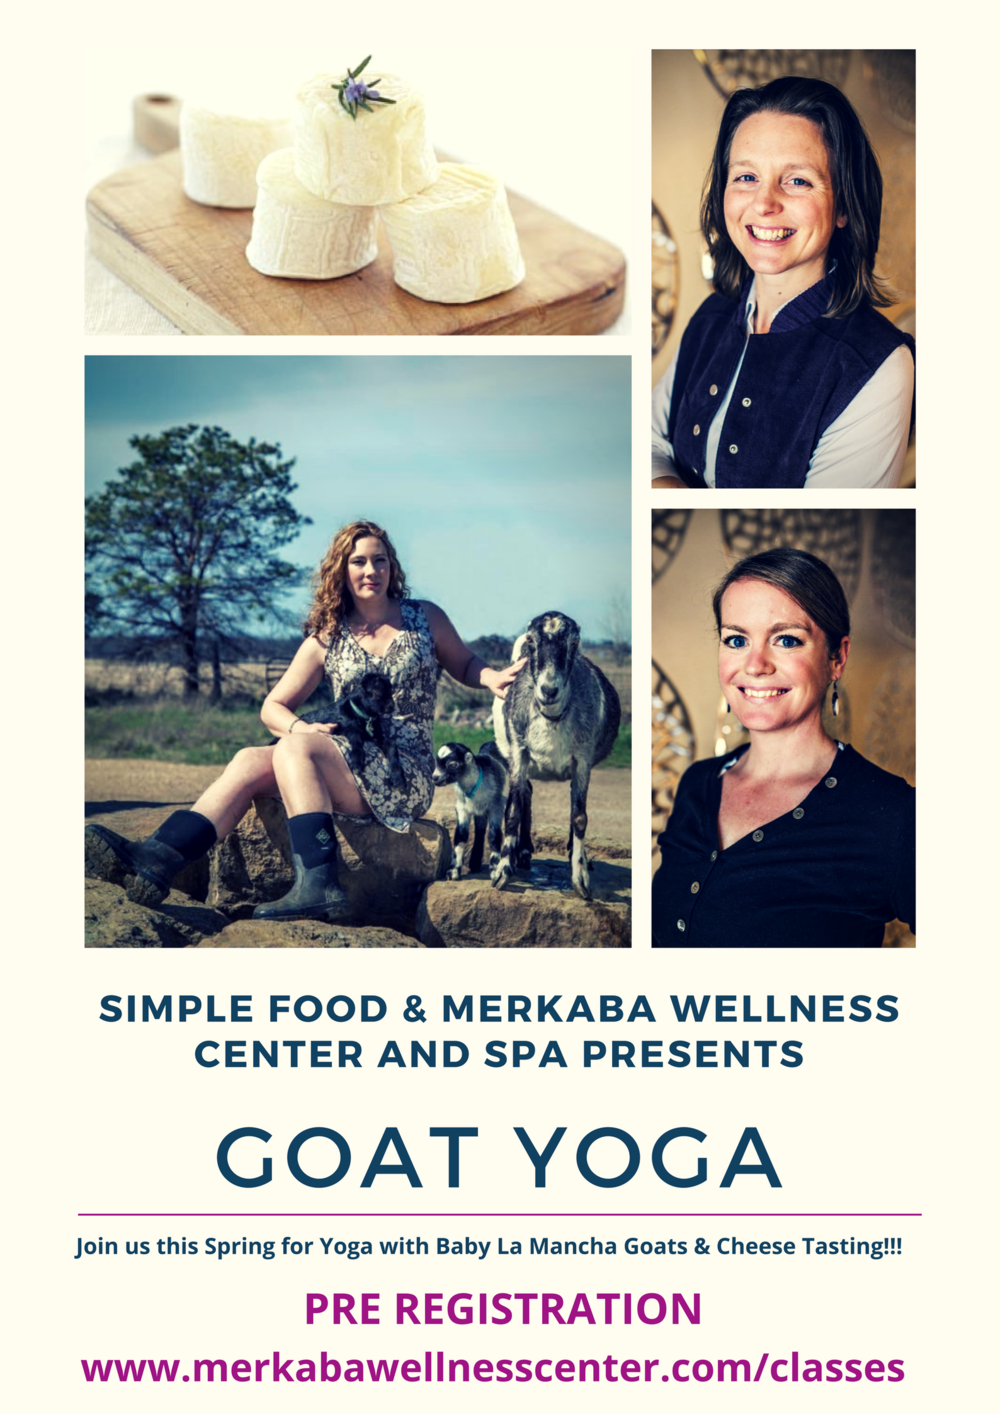 During Spring, join us for a special treat, Yoga in the country with Baby Goats and Cheese Tasting from Simple Food. Your Practitioner will guide you through classic empowering and relaxing yoga poses. Your body becomes a playground for goats just born into this world. It's a circle of fun and healing that will open your heart. Completely serious, incredibly hilarious, and everything in between. Each class ends with Simple Food's, specially crafted Goat Cheese and Milk tasting. **Seasonal** Bring your own Yoga mat.  Click link below to register  This class is SOLD OUT. Please click the link below for future dates.   75 Minute Class with Cheese tasting $45 / without Cheese tasting $35